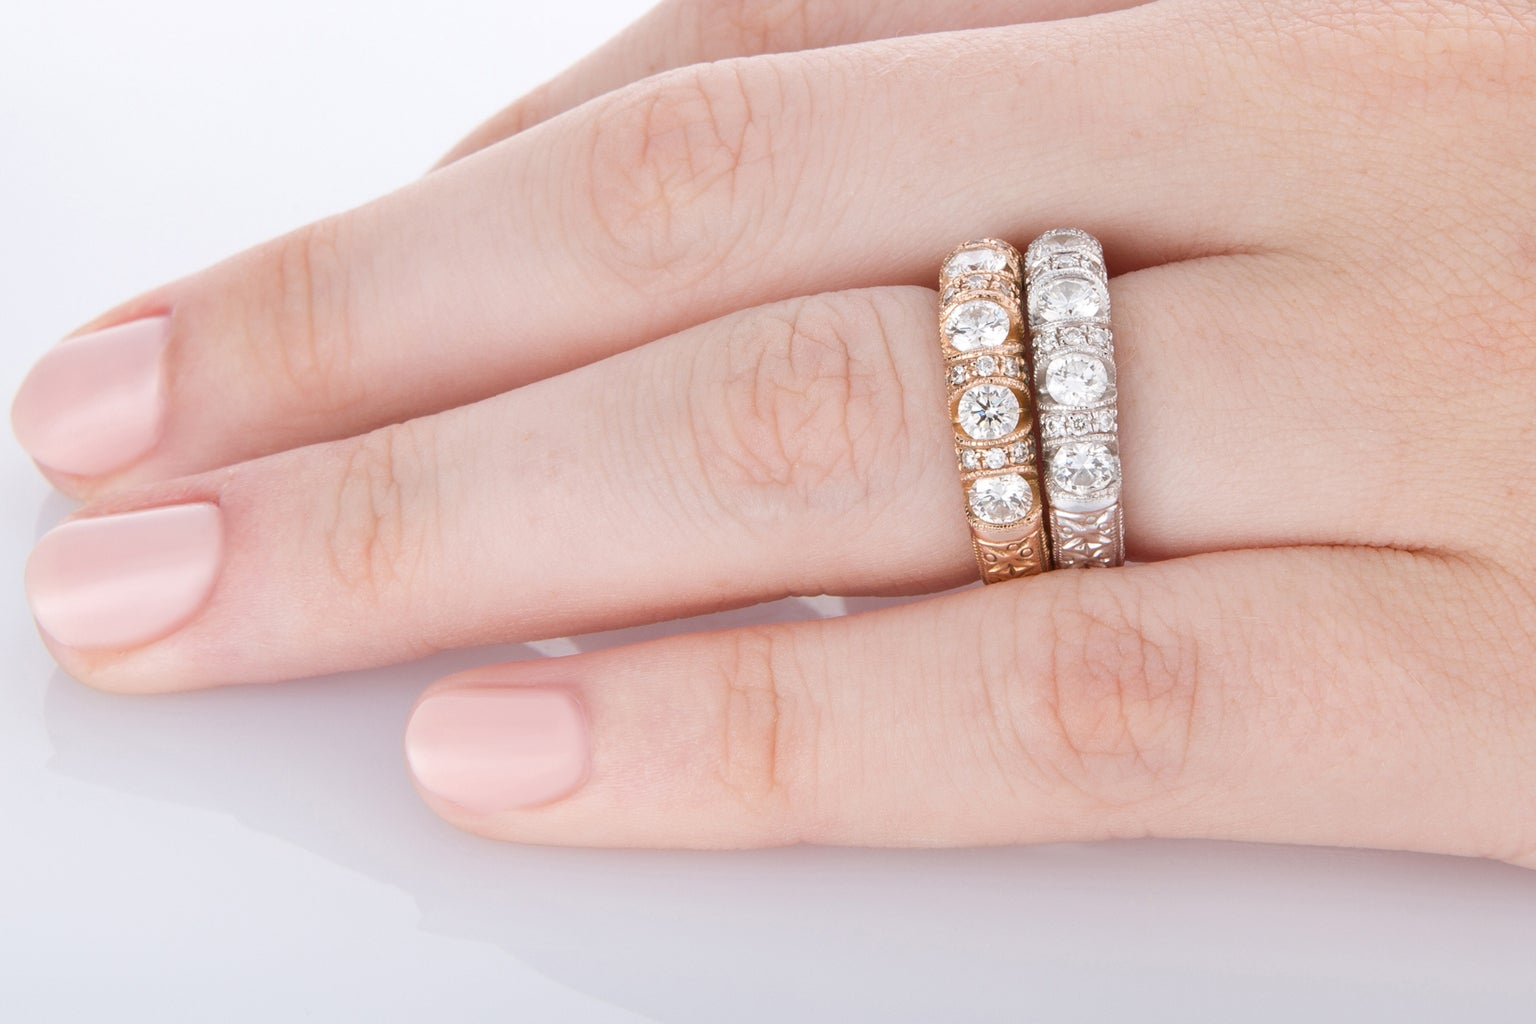 18 Karat Yellow Gold Engraved Eternity Ring For Sale at 1stdibs